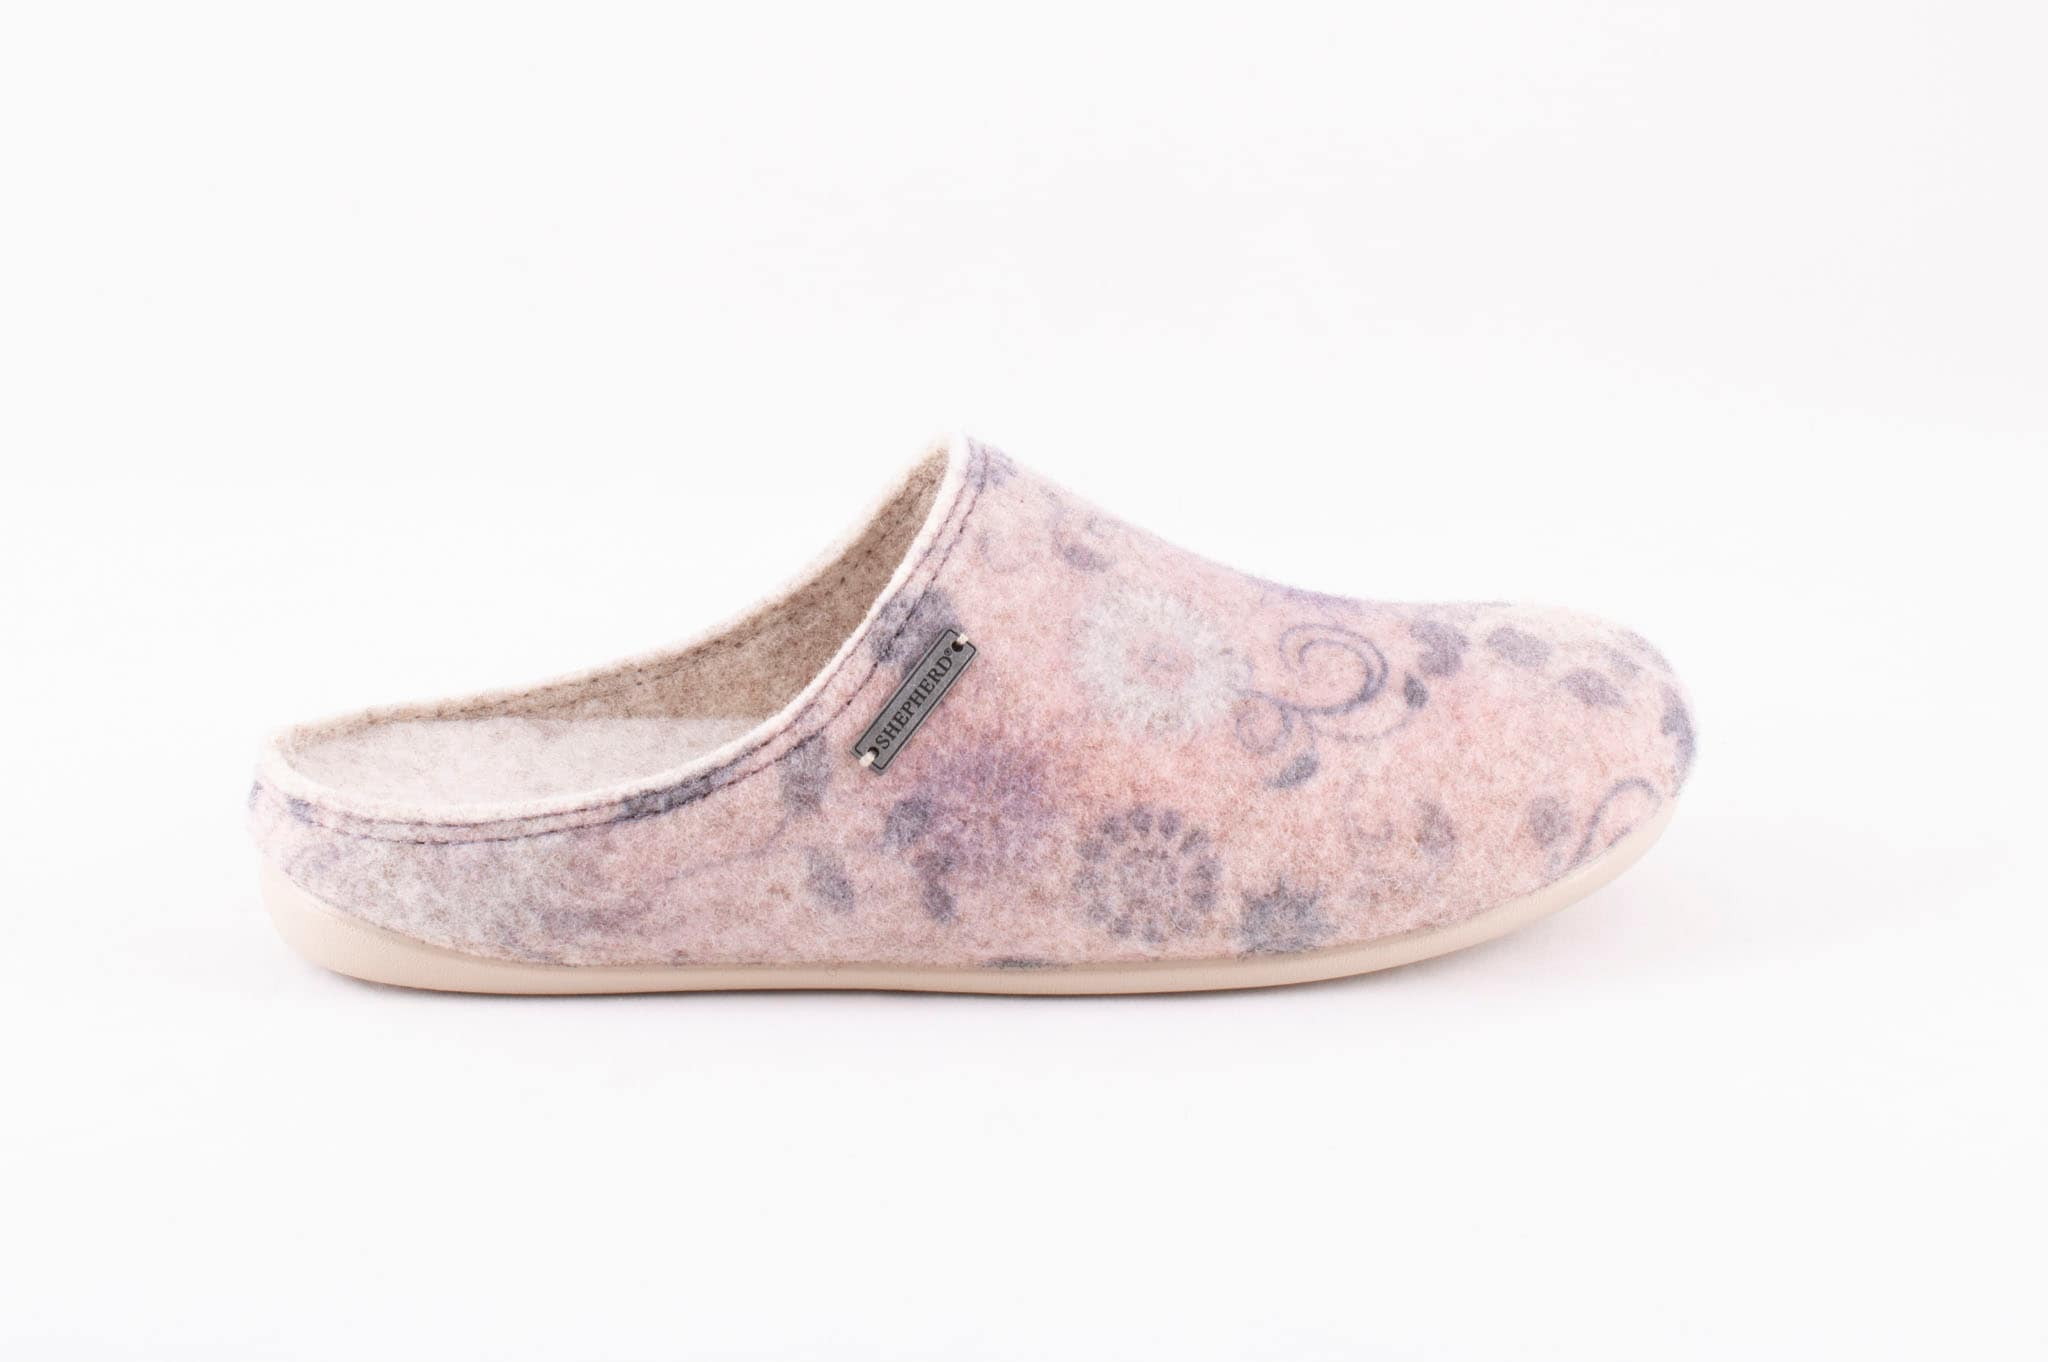 Cilla wool slippers Beige/paisley